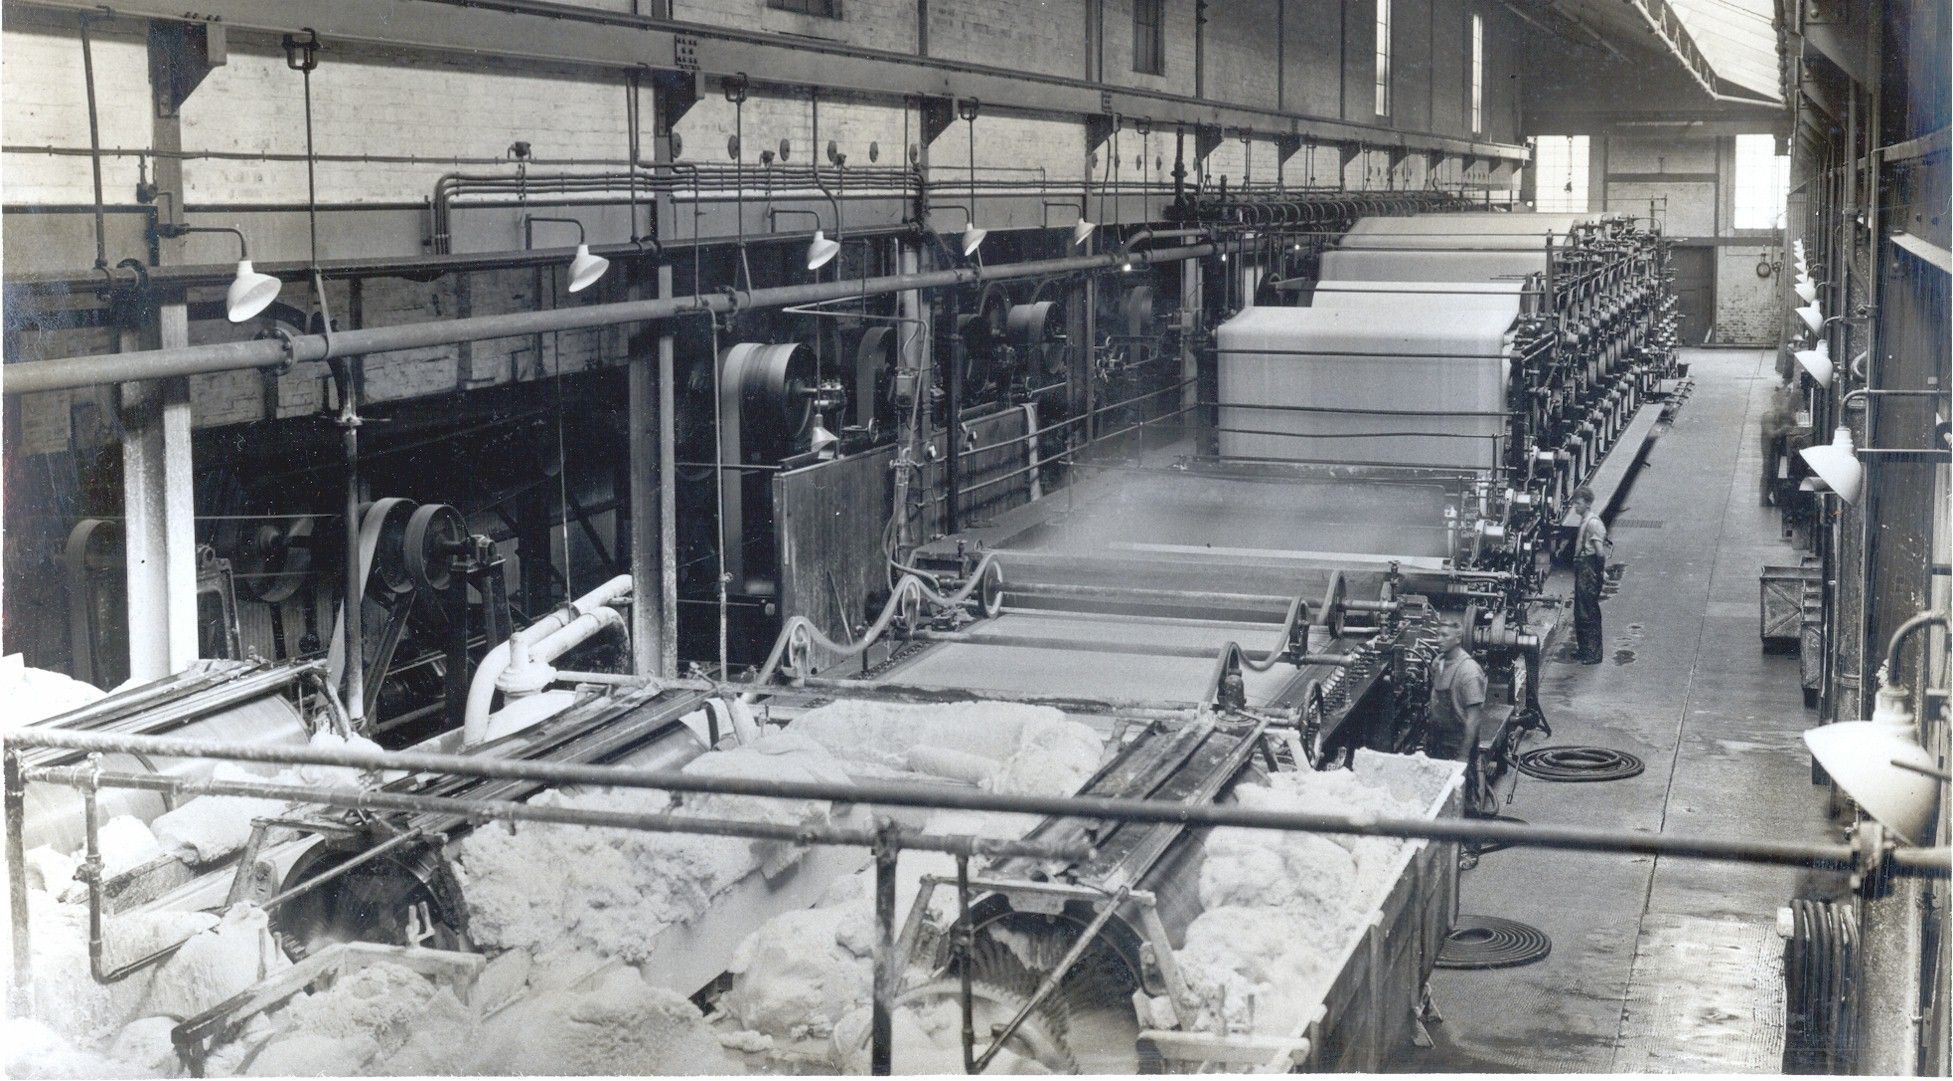 industrial production essay This industry was efficient but the workers, productivity was low, making  the  year was 1733, the demand for cotton cloth was high, but production was low.